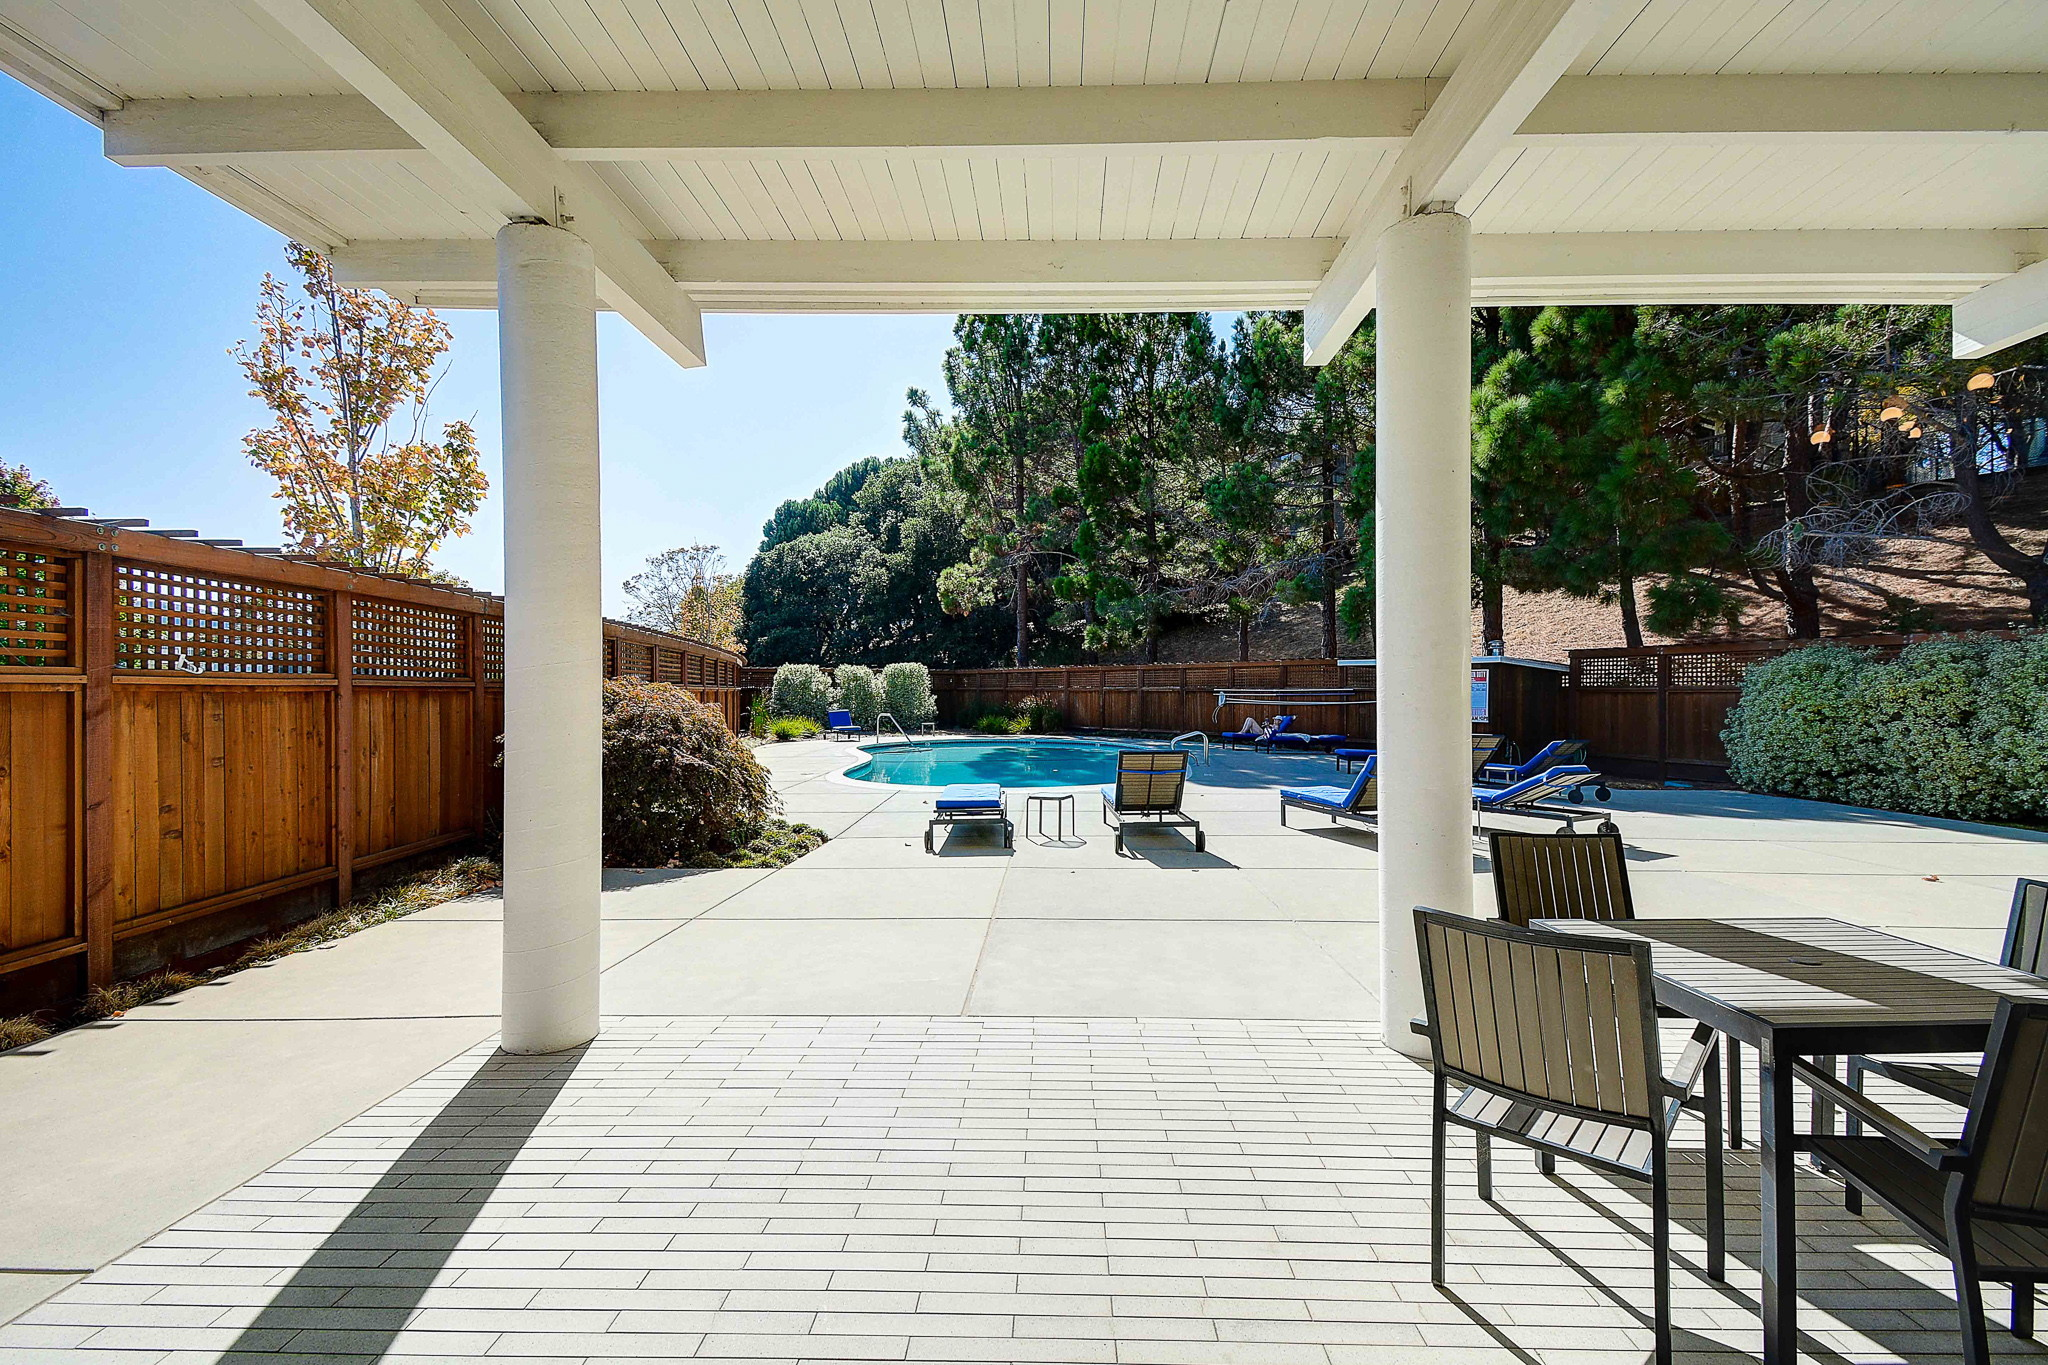 3223 Shelter Bay Avenue-33 Mill Valley Top Realtor - Allie Fornesi on Own Marin County's #1 Real Estate Team.jpg